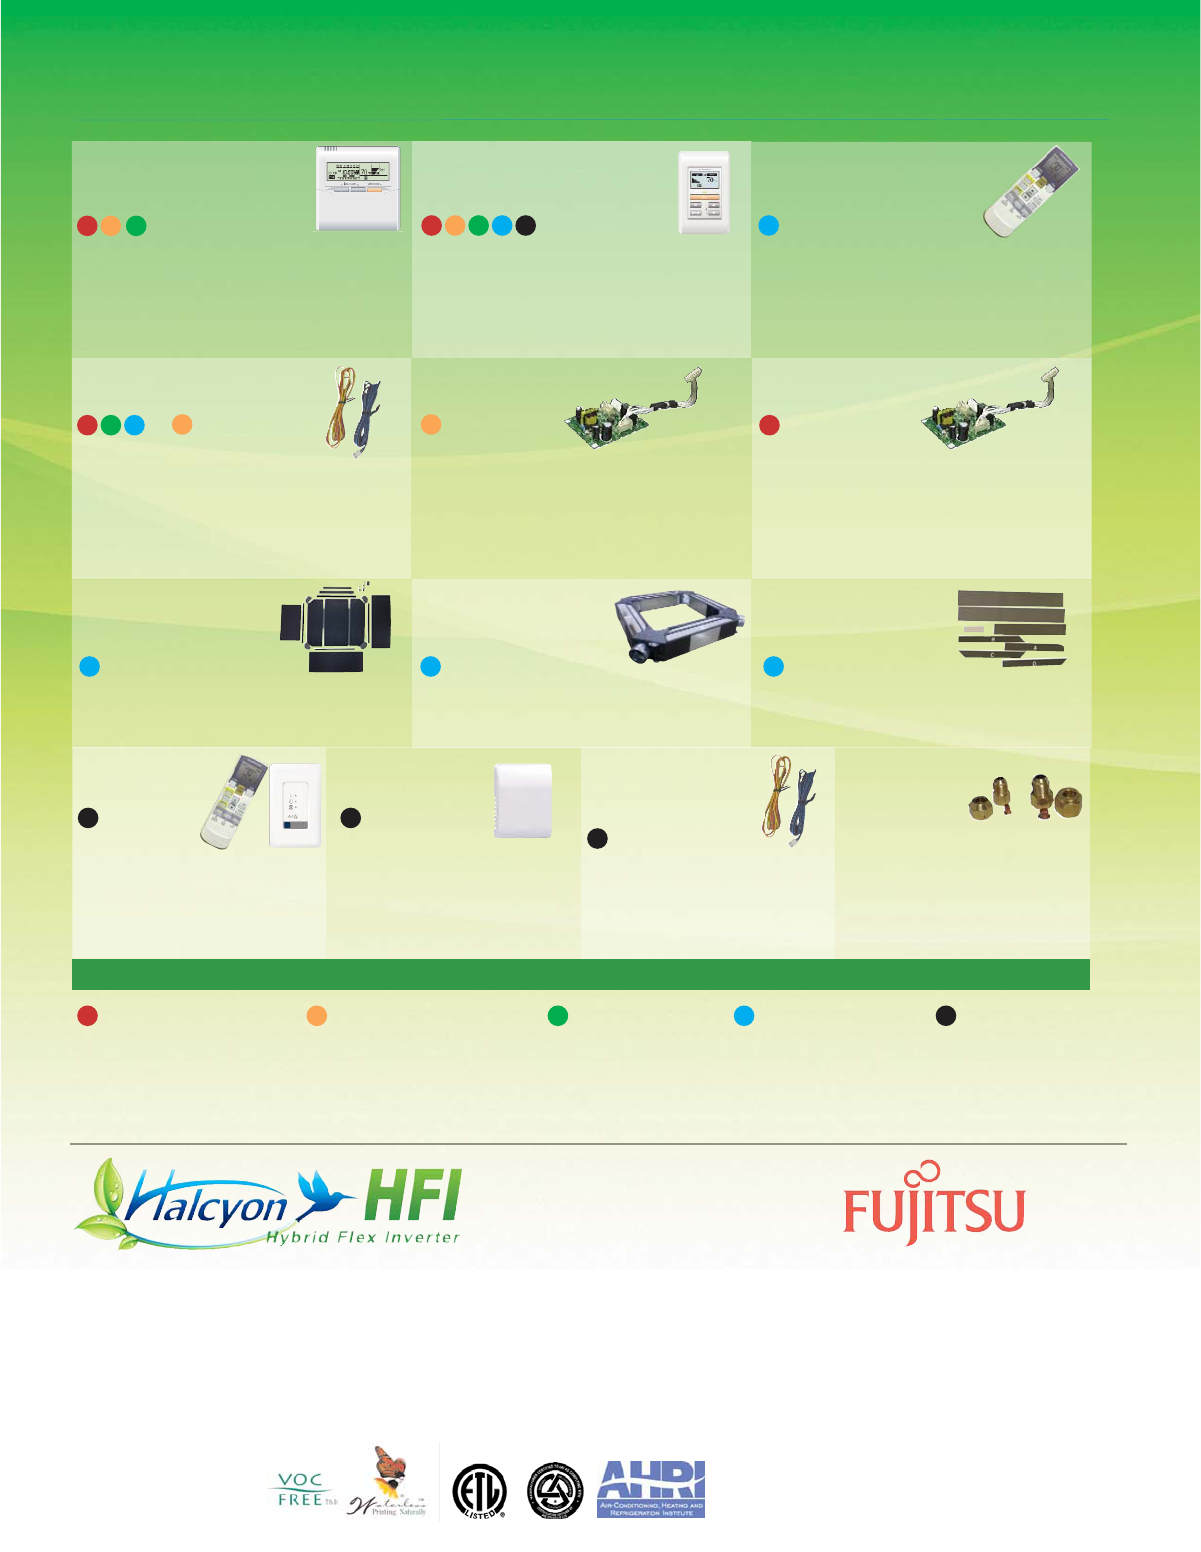 Fujitsu AOU18RLXFZ, AOU24RLXFZ, AOU36FLXFZ, Hybrid Flex Inverter System Optional Accessories